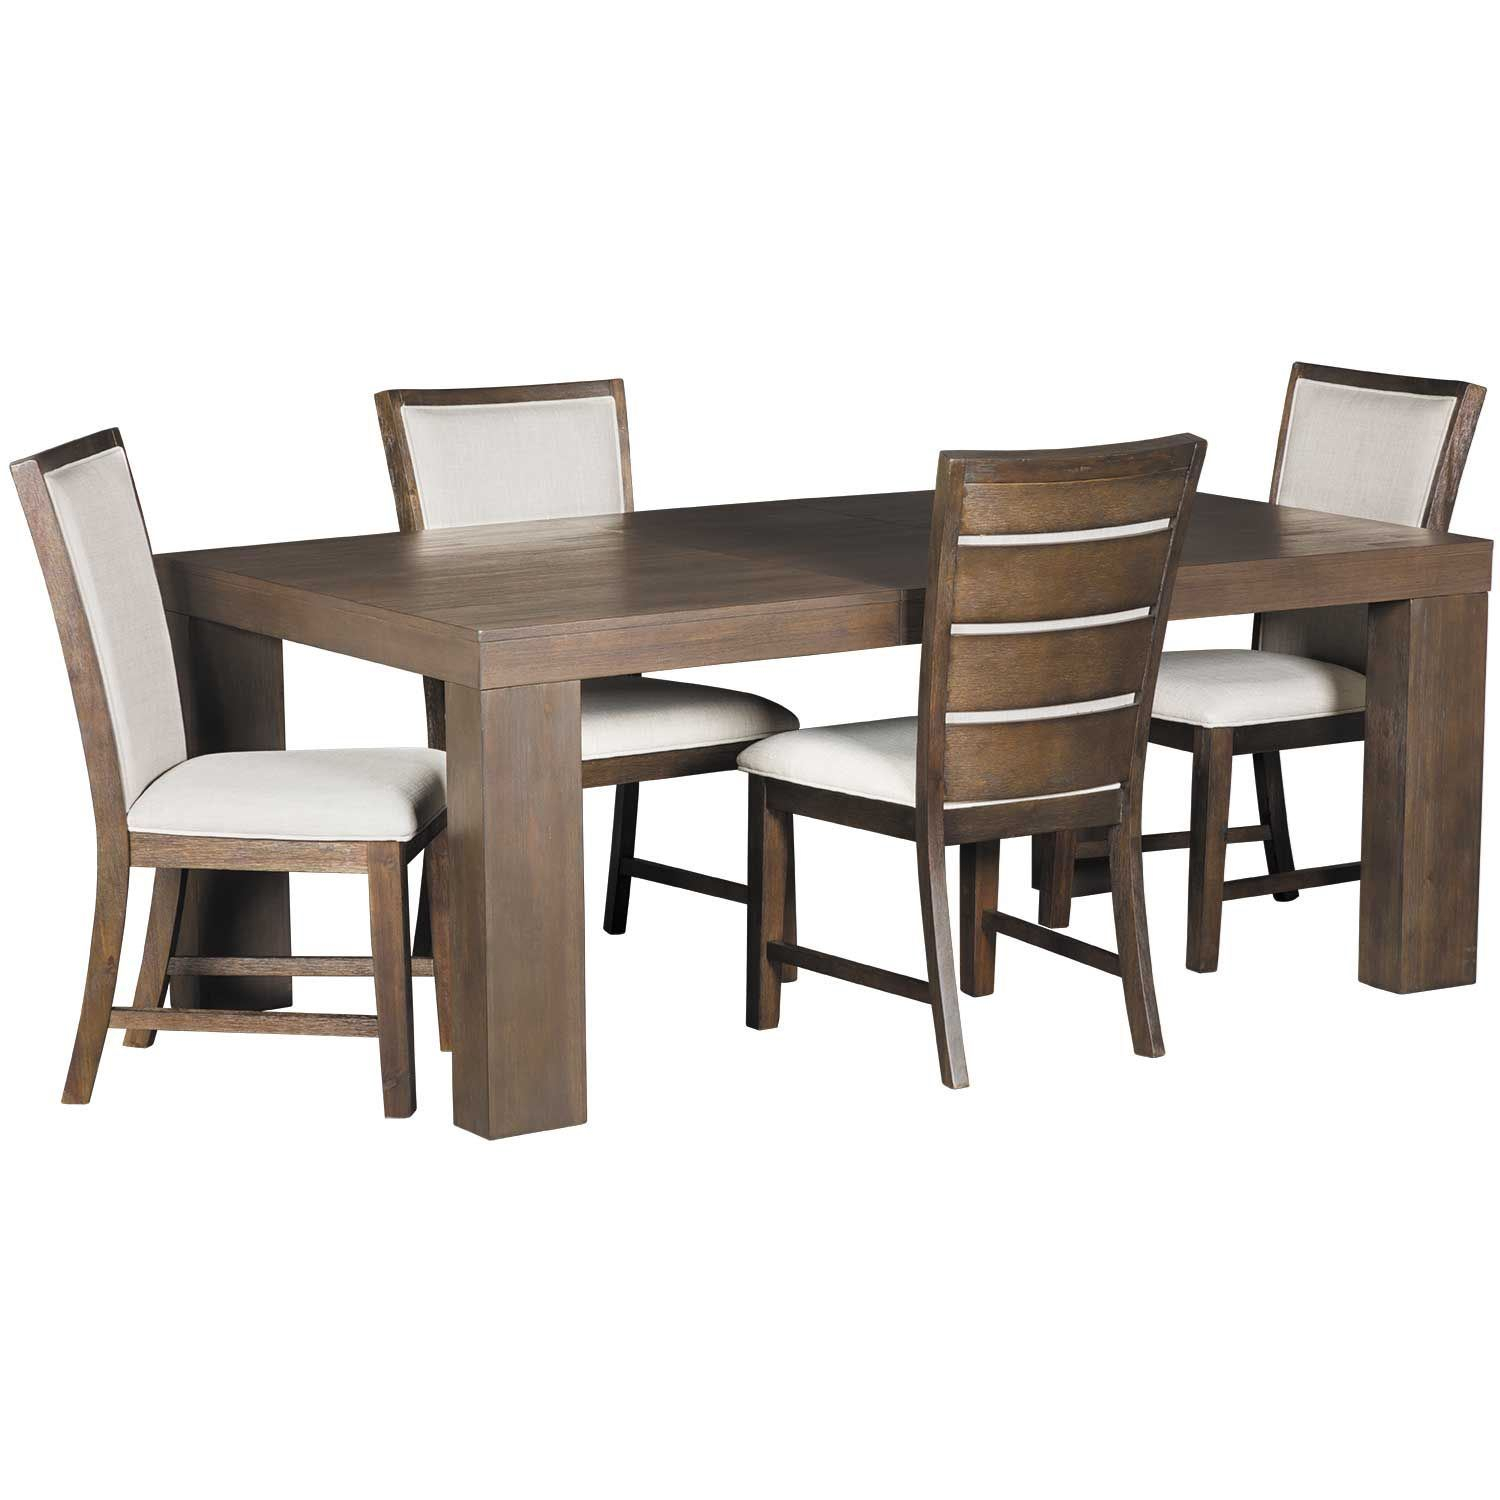 Grady 5 Piece Dining Set With Latest 5 Piece Dining Sets (View 18 of 20)